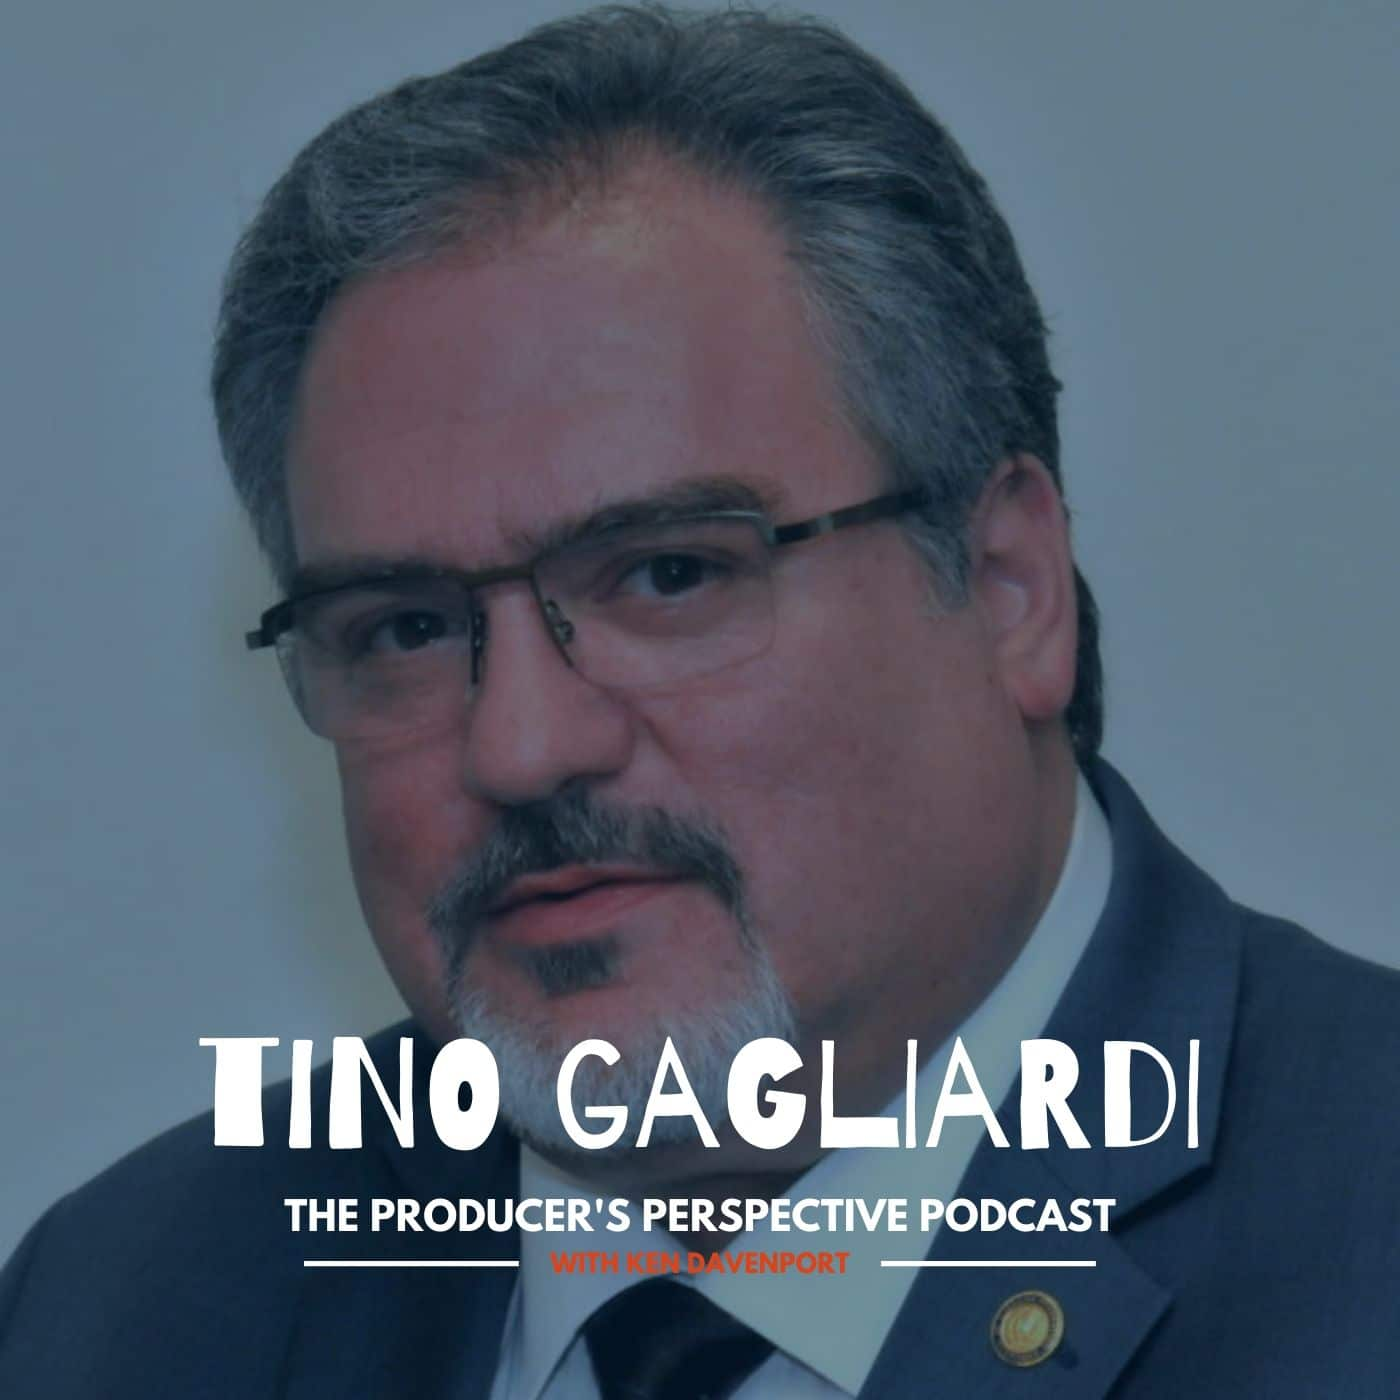 Ken Davenport's The Producer's Perspective Podcast Episode 60 - Tino Gagliardi